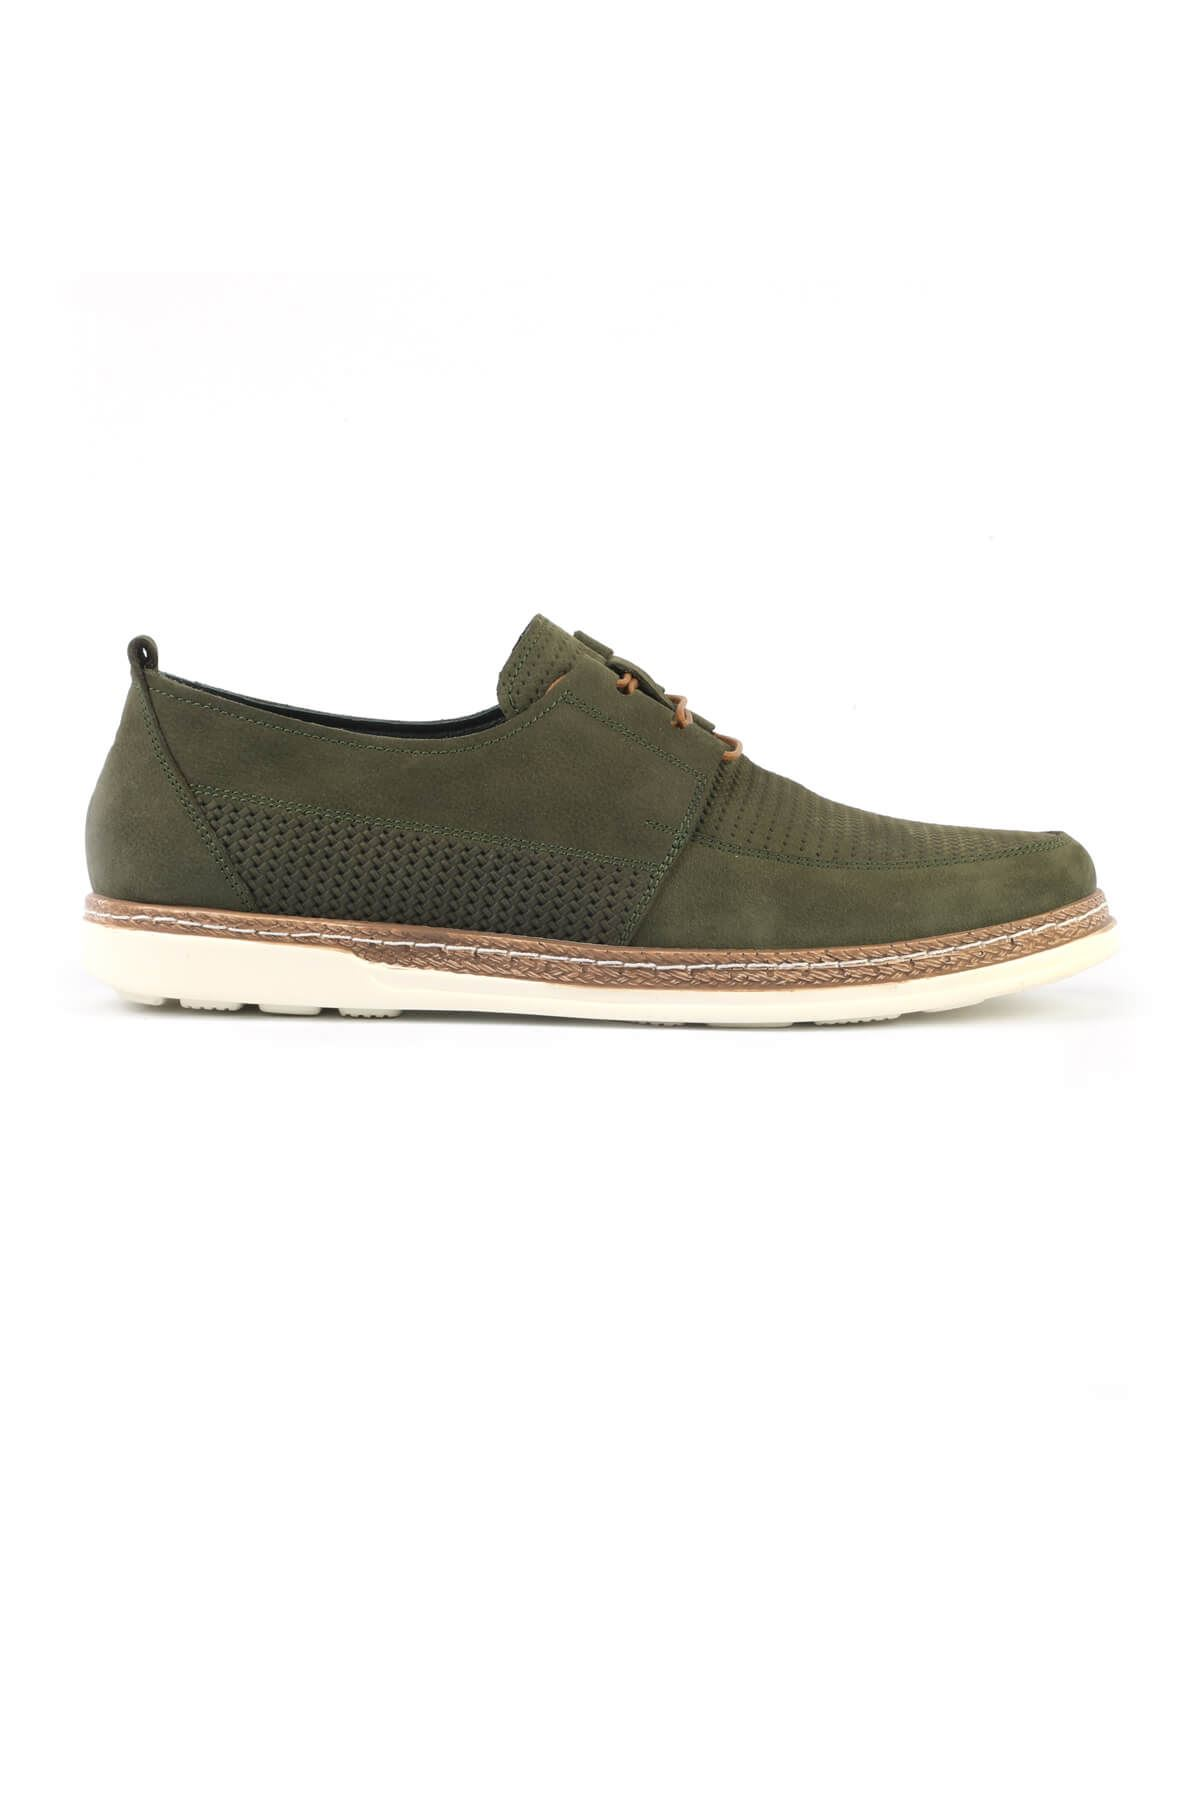 Libero C623 Green Loafer Shoes